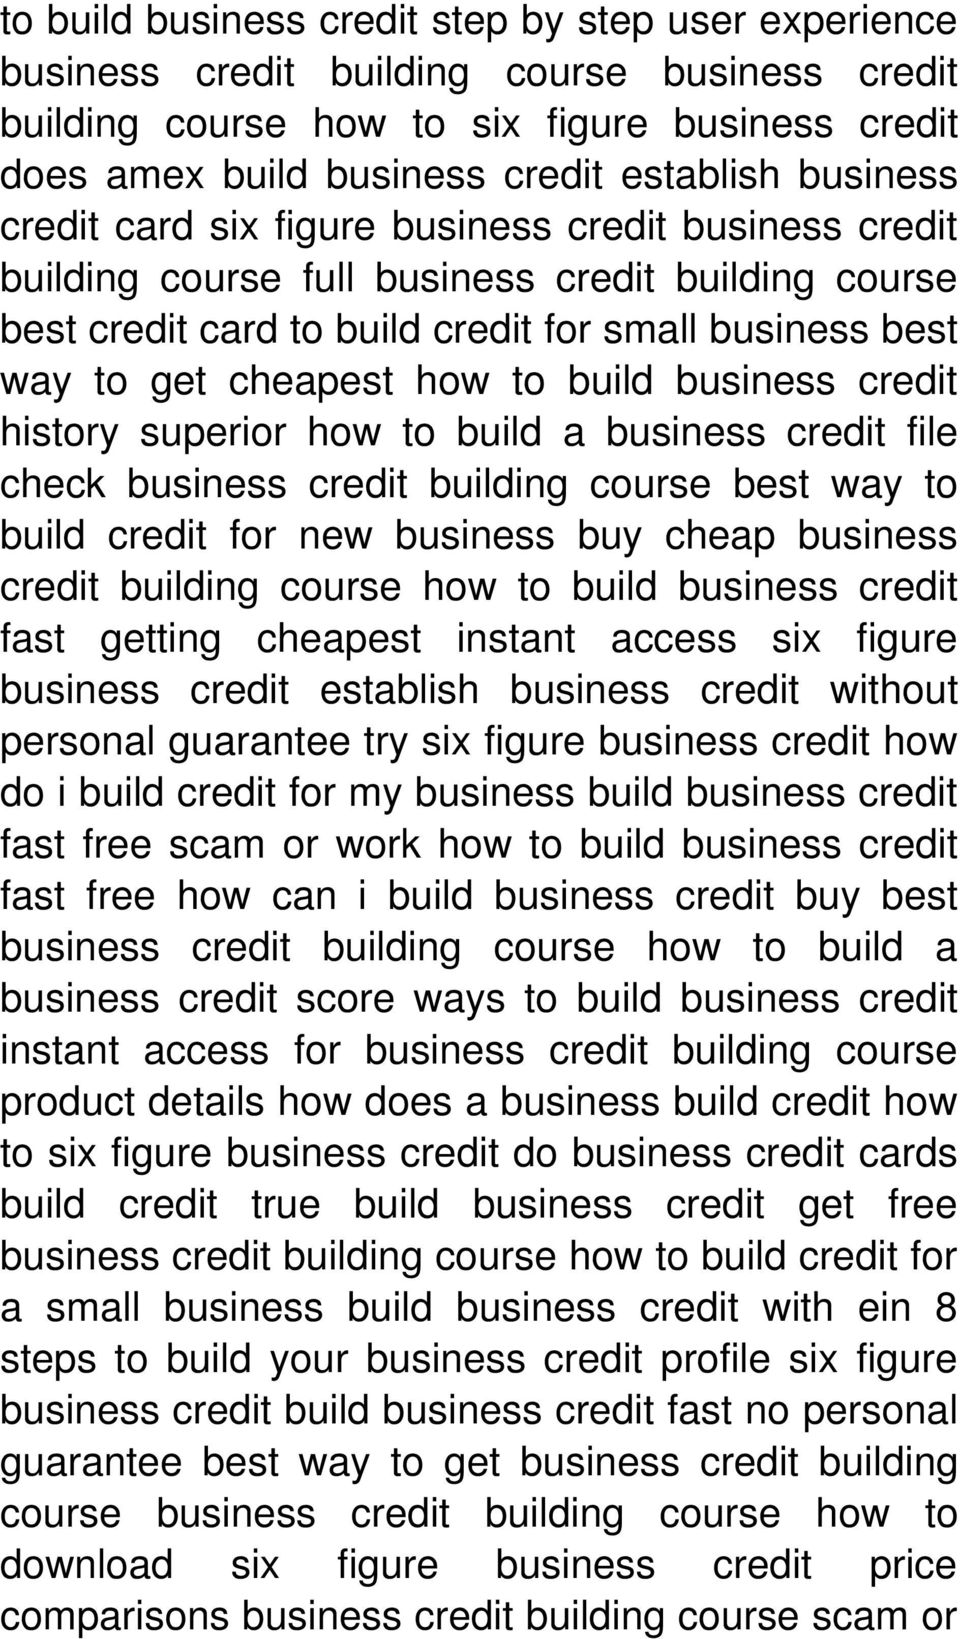 to build business credit history superior how to build a business credit file check business credit building course best way to build credit for new business buy cheap business credit building course